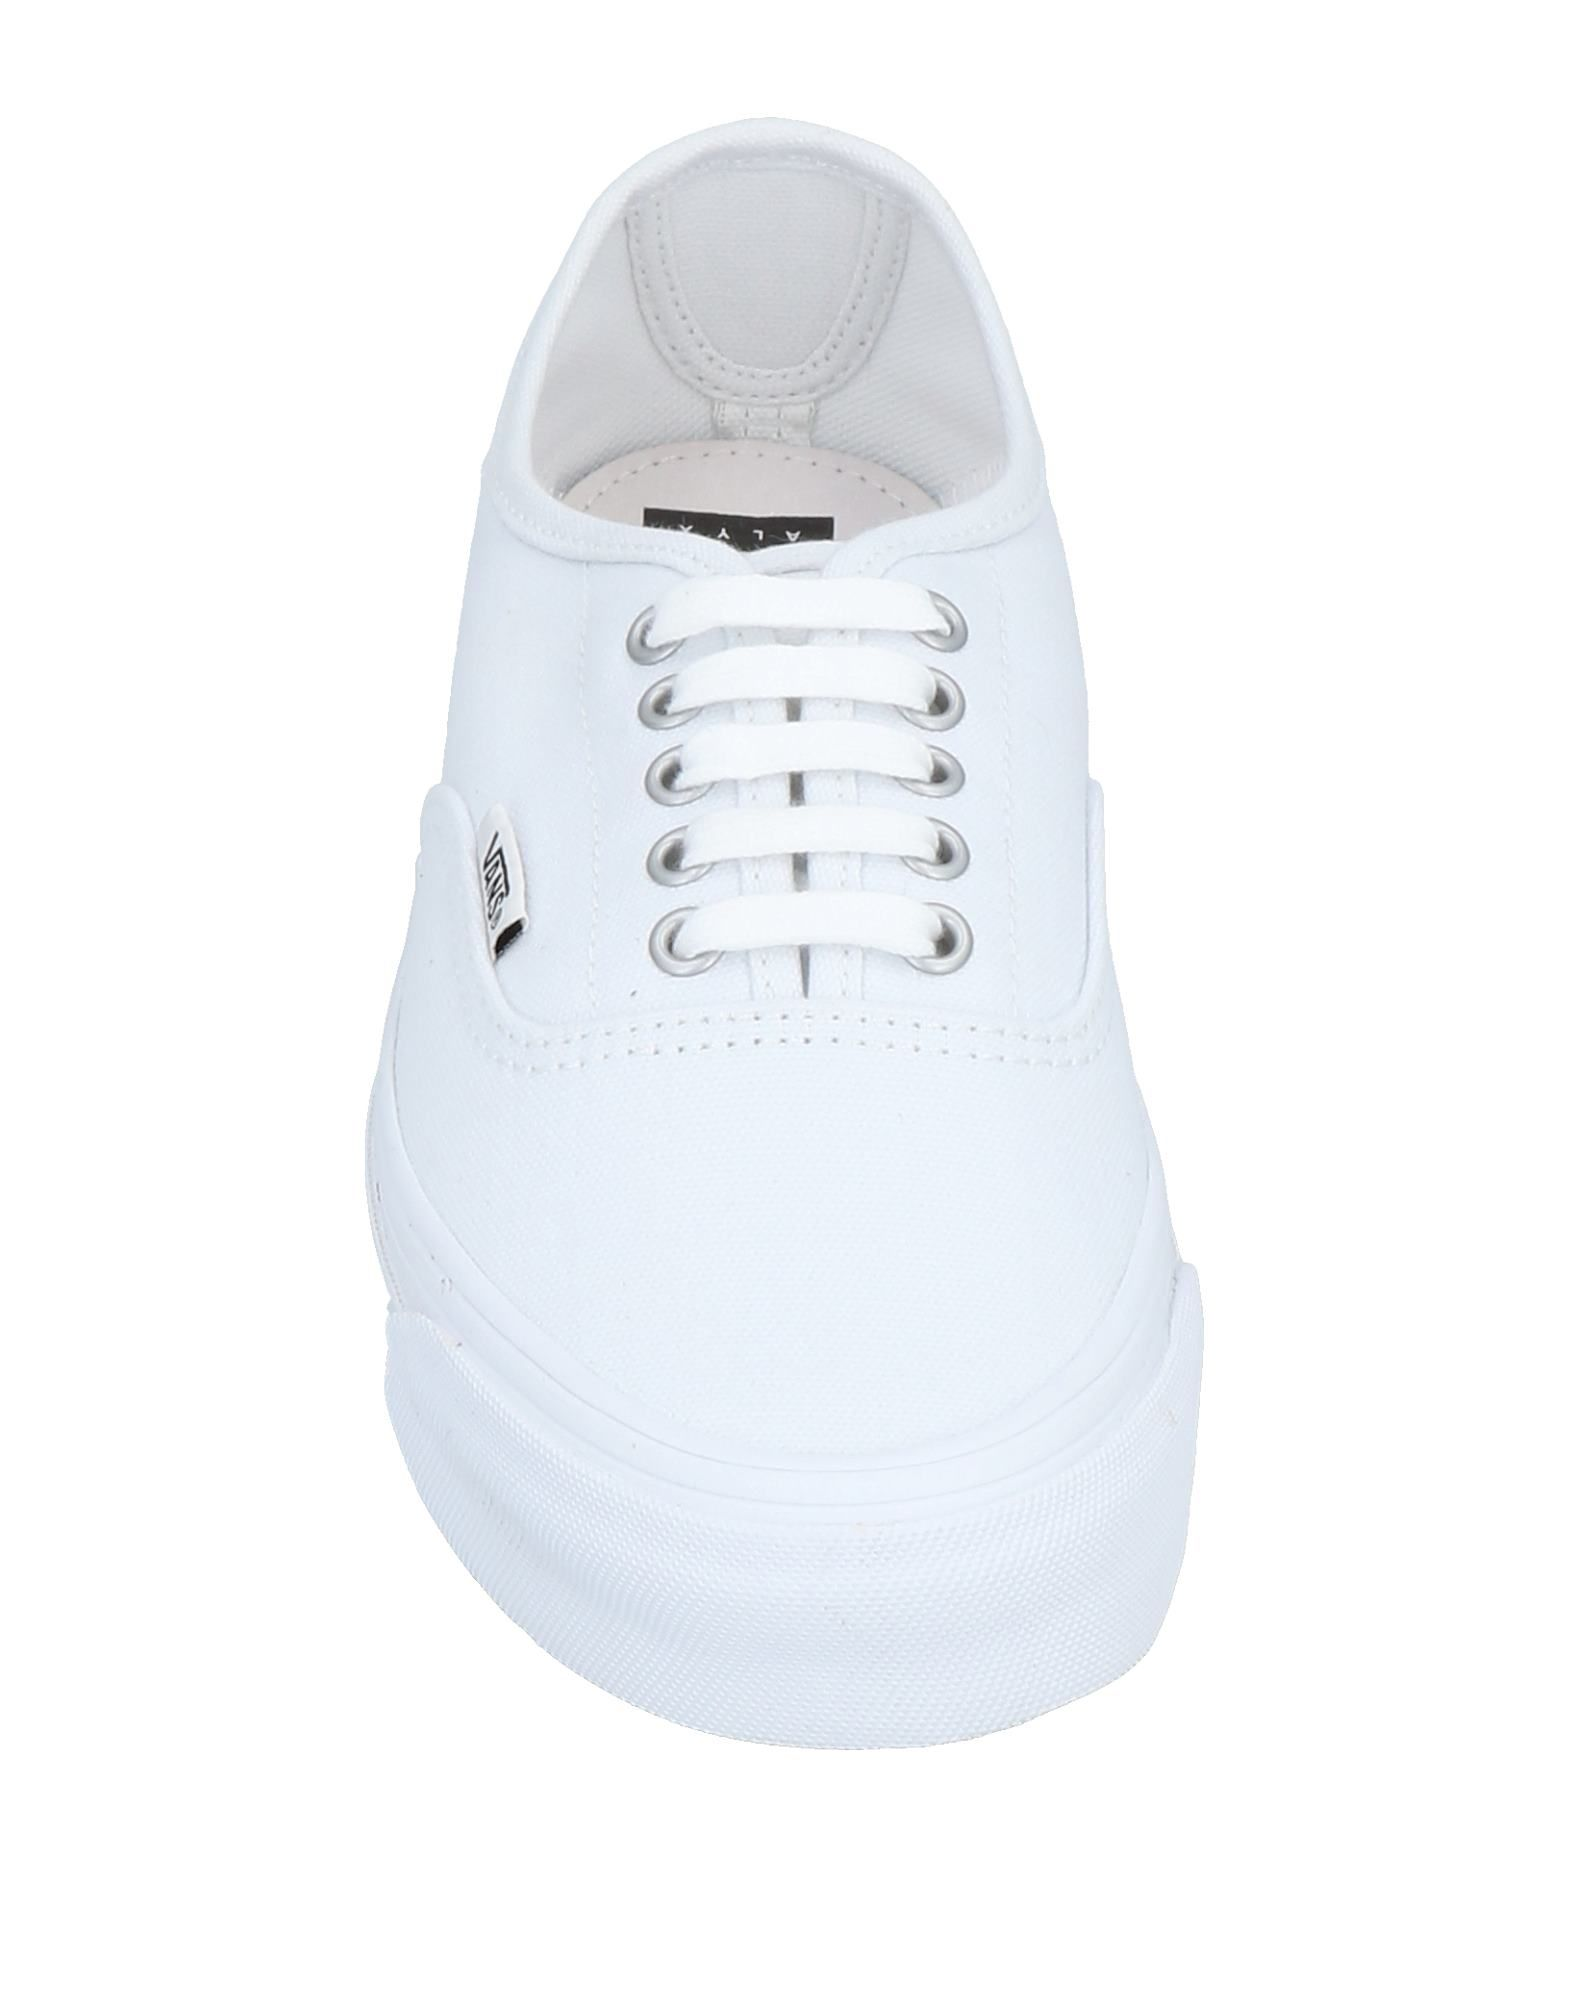 Vans Sneakers - Women Vans Sneakers Sneakers Sneakers online on  Canada - 11494447UI 922609